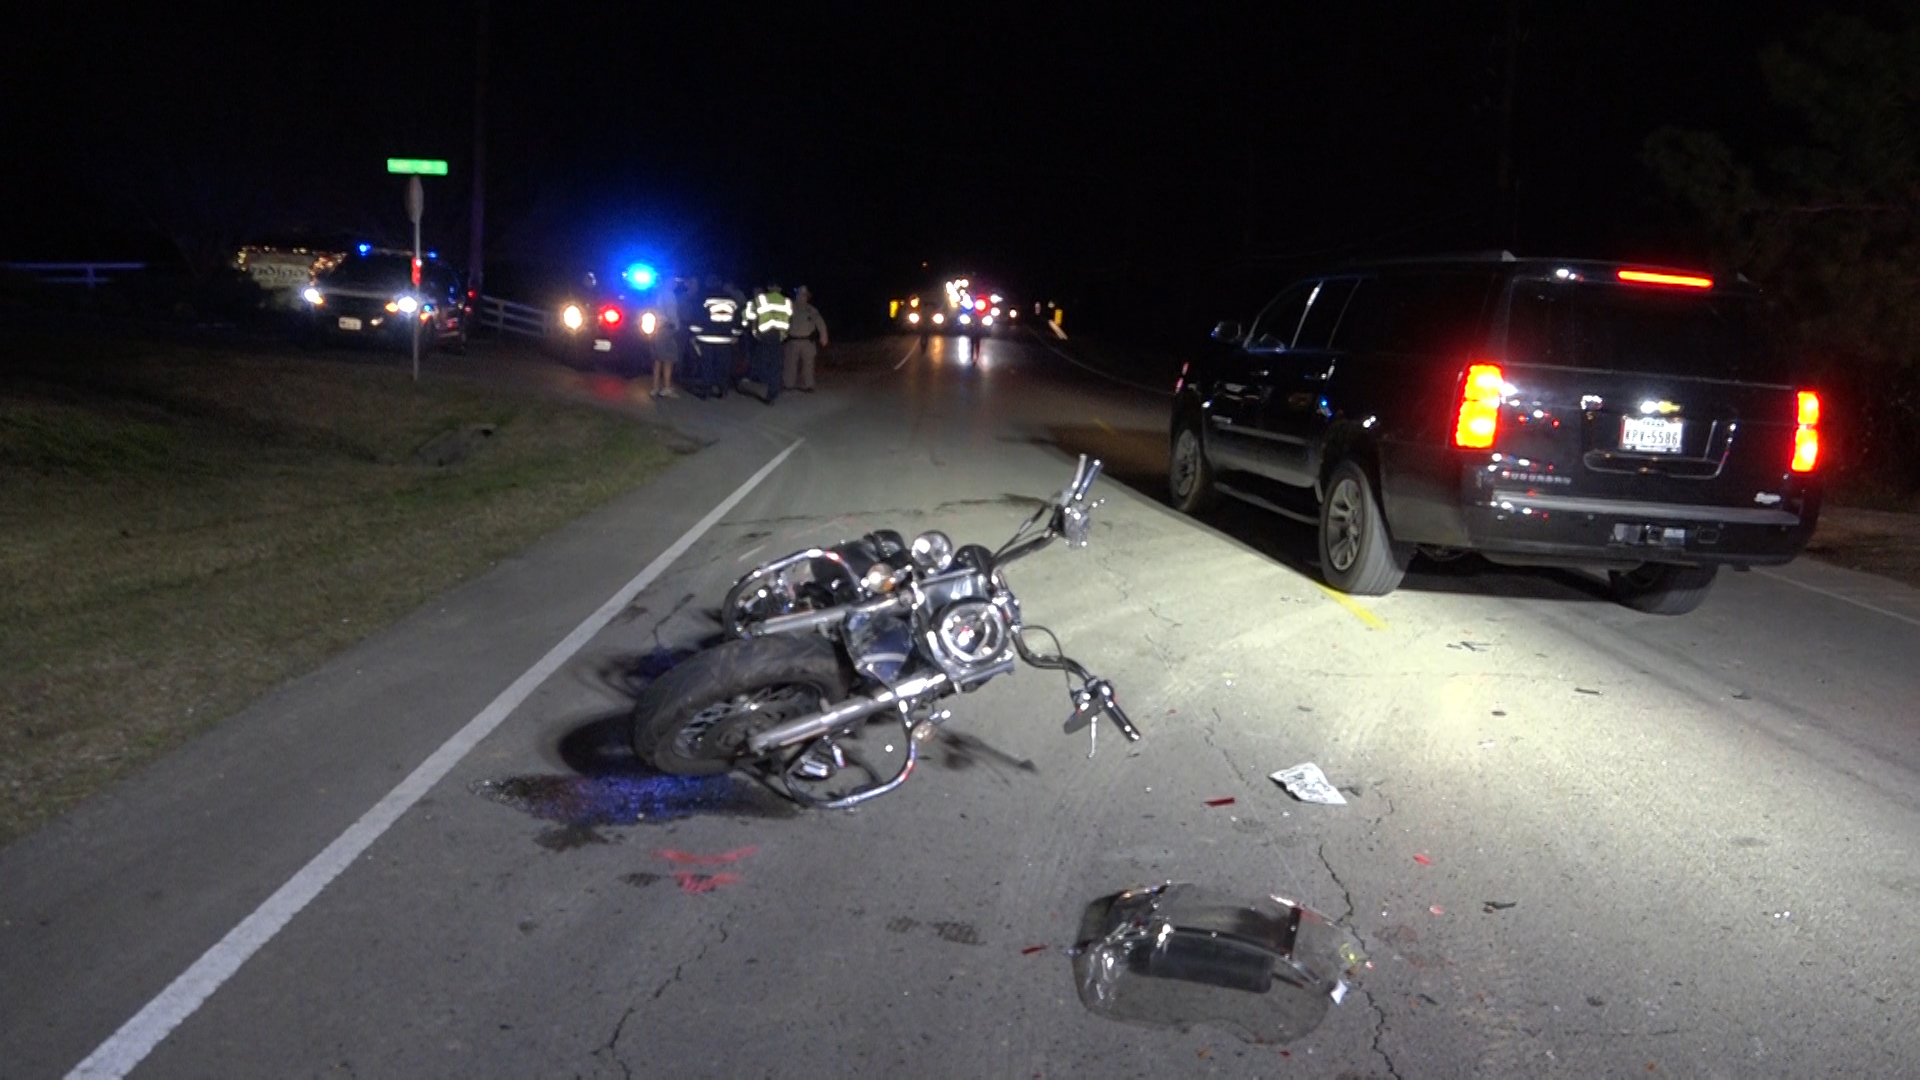 Motorcycle rider dies in crash near Magnolia - Laredo Morning Times